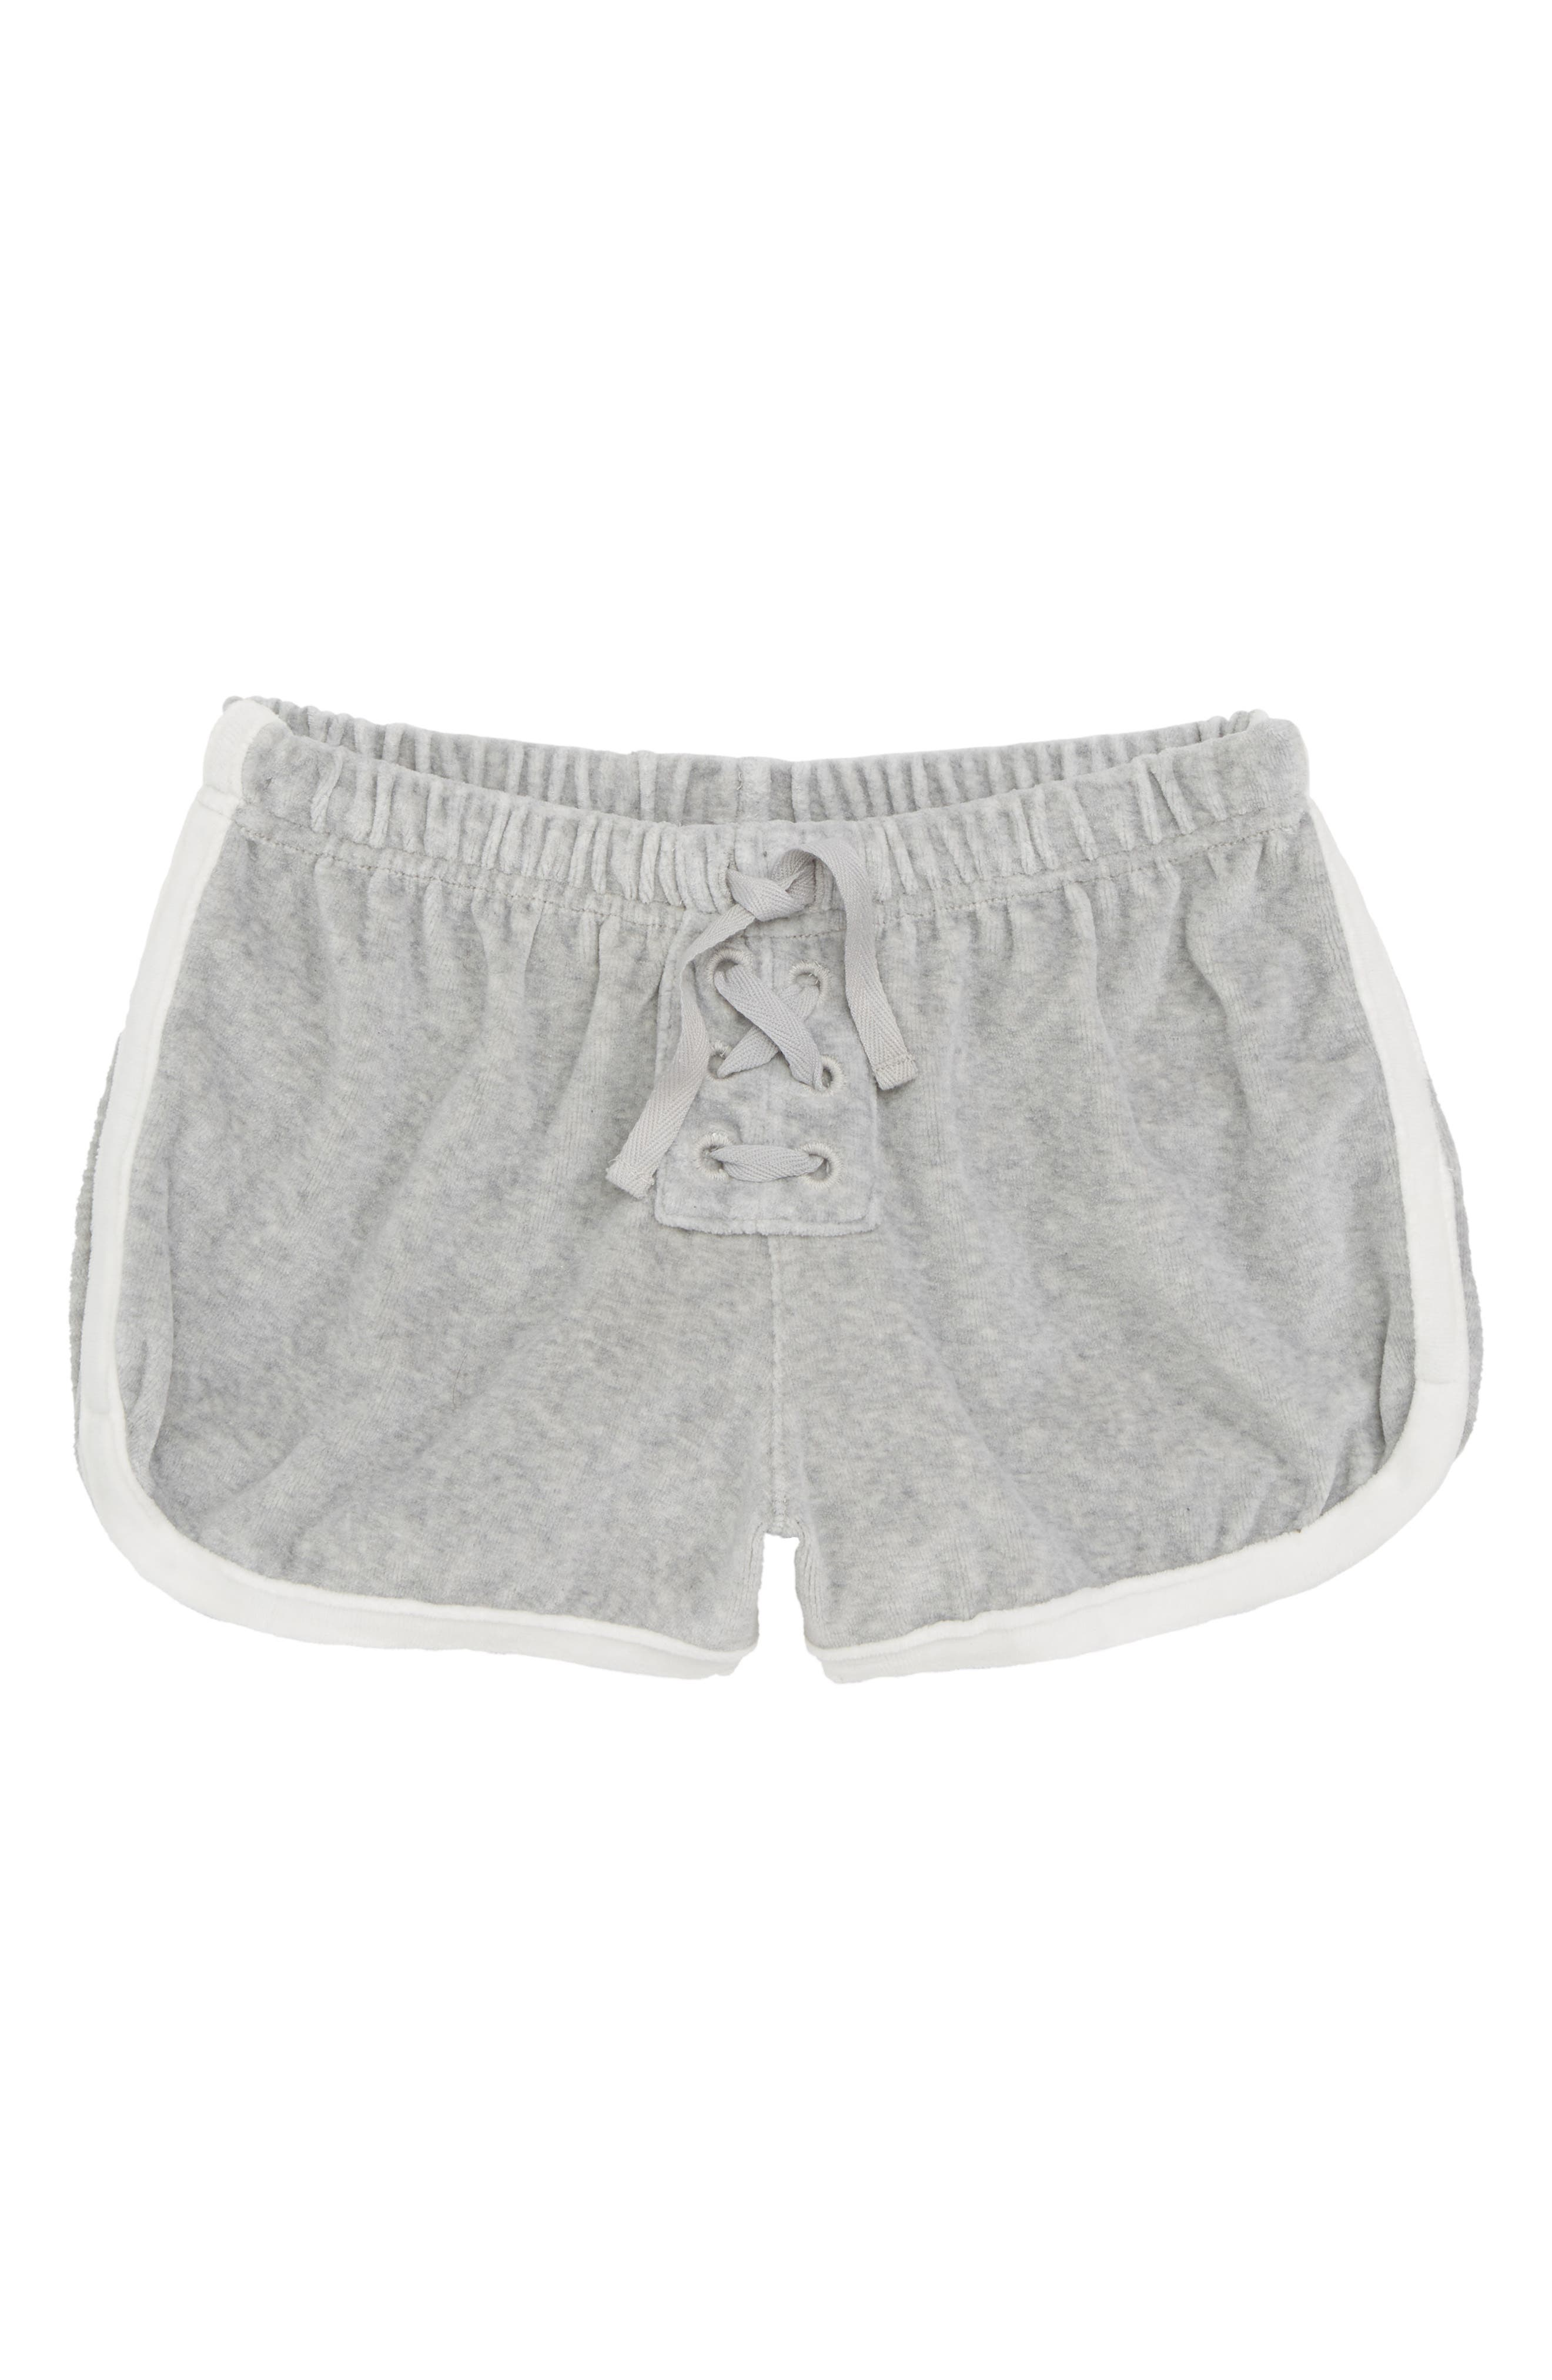 Velour Track Shorts,                             Main thumbnail 1, color,                             Grey Ash Heather